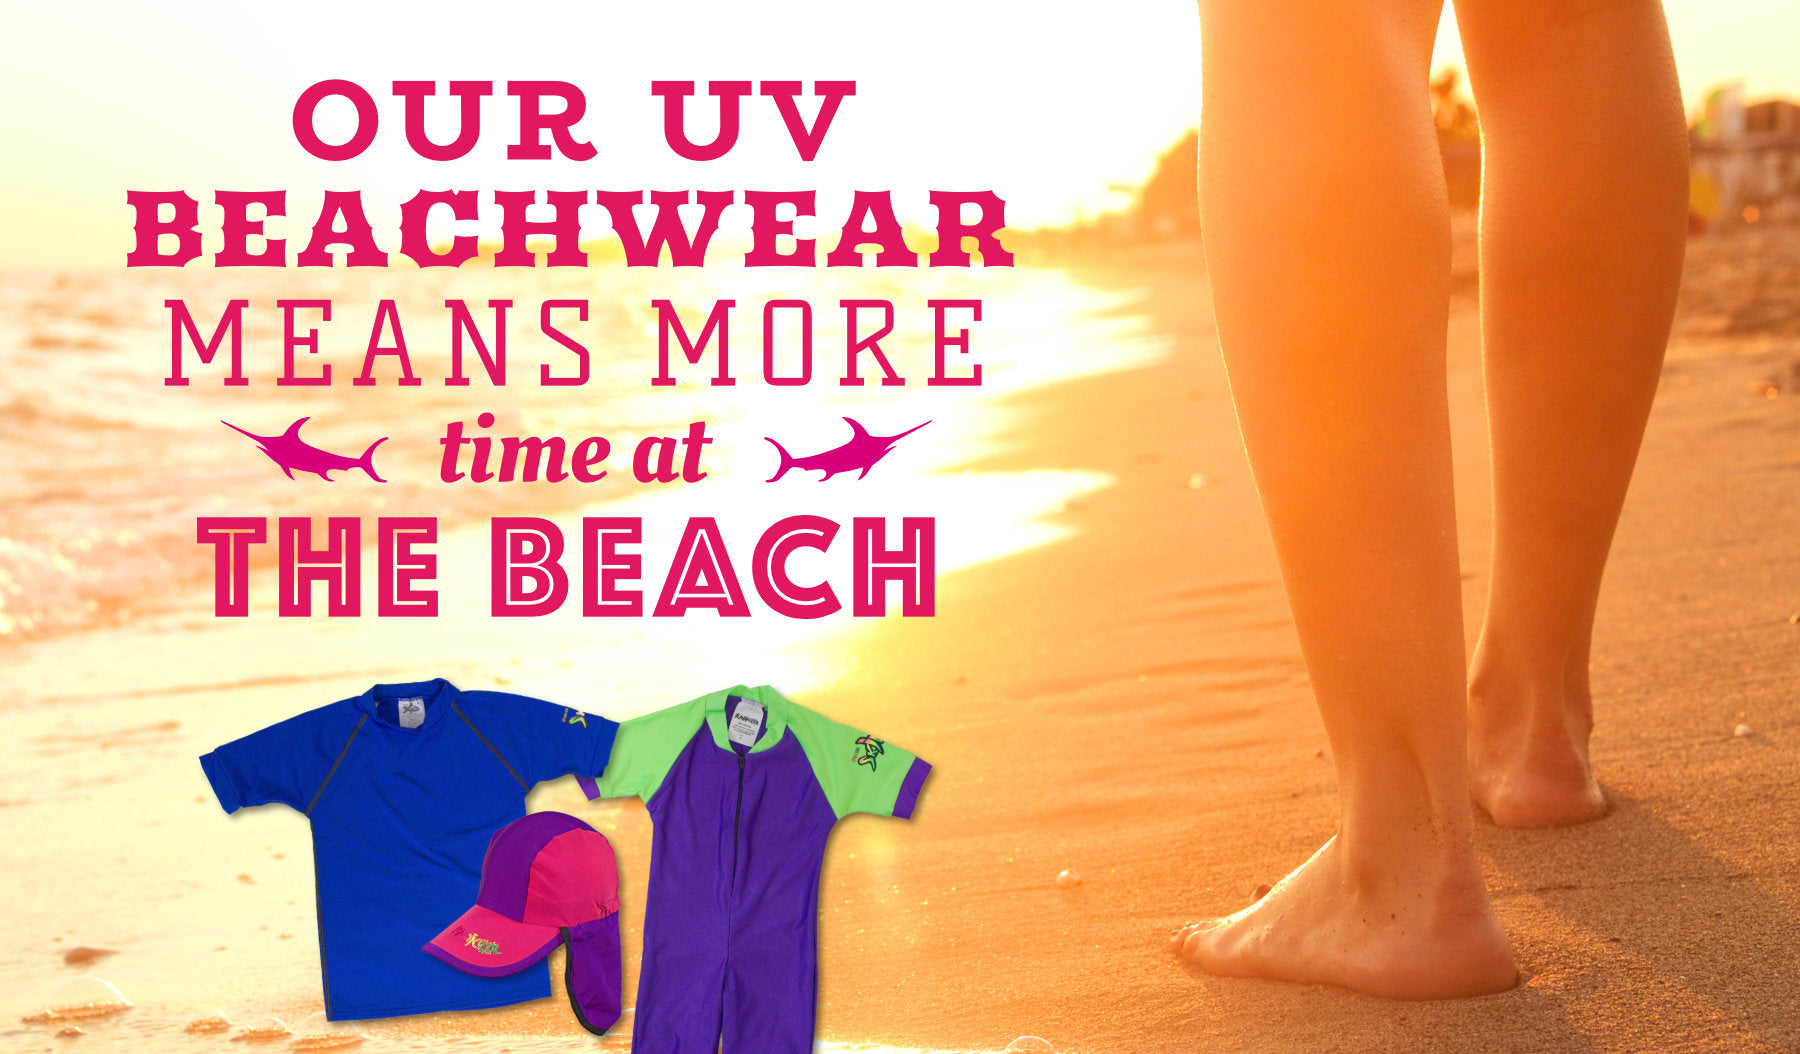 more time at the beach with radicool uv beachwear